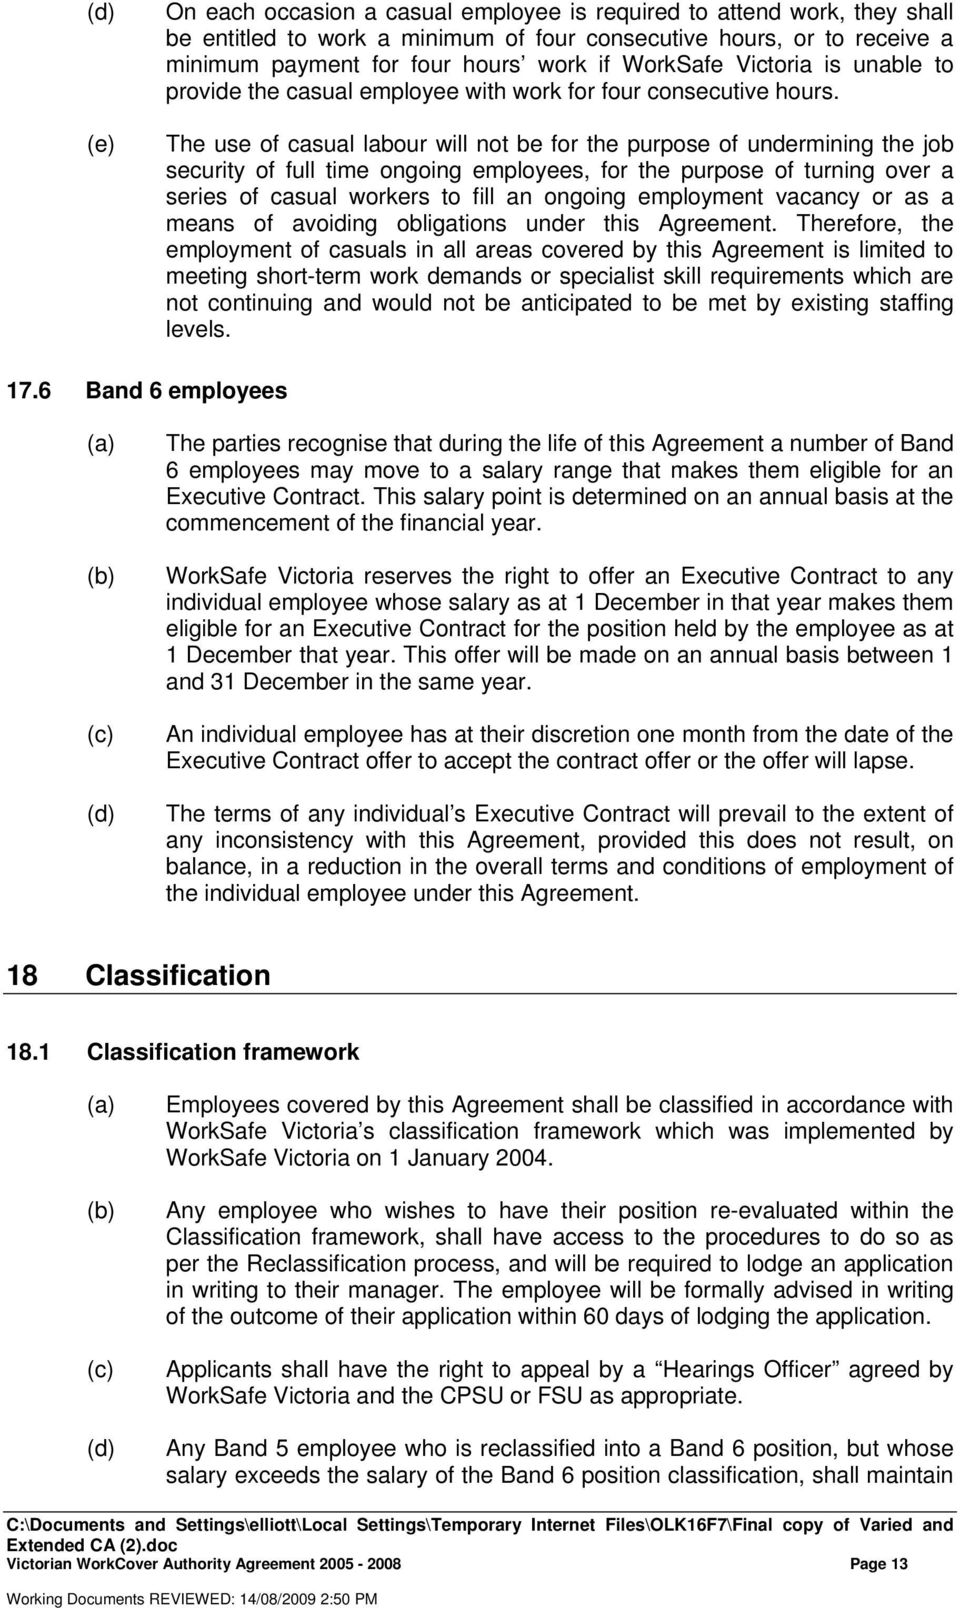 VICTORIAN WORKCOVER AUTHORITY AGREEMENT known as WORKSAFE – Casual Employment Agreement